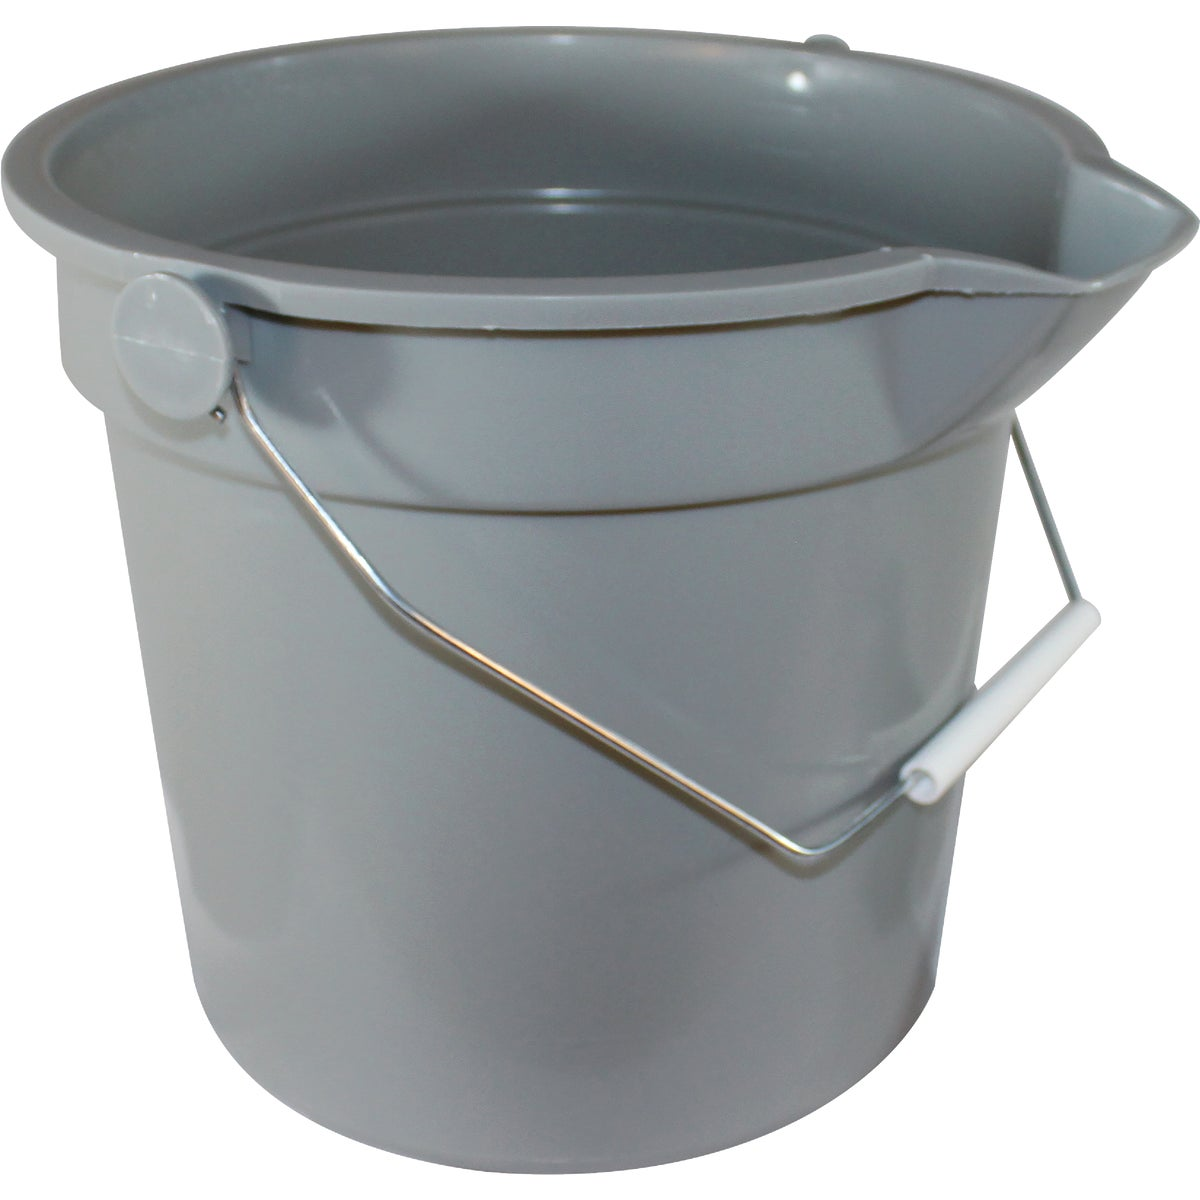 14 QUART RED BUCKET - FG261400RED by Rubbermaid Comm Prod